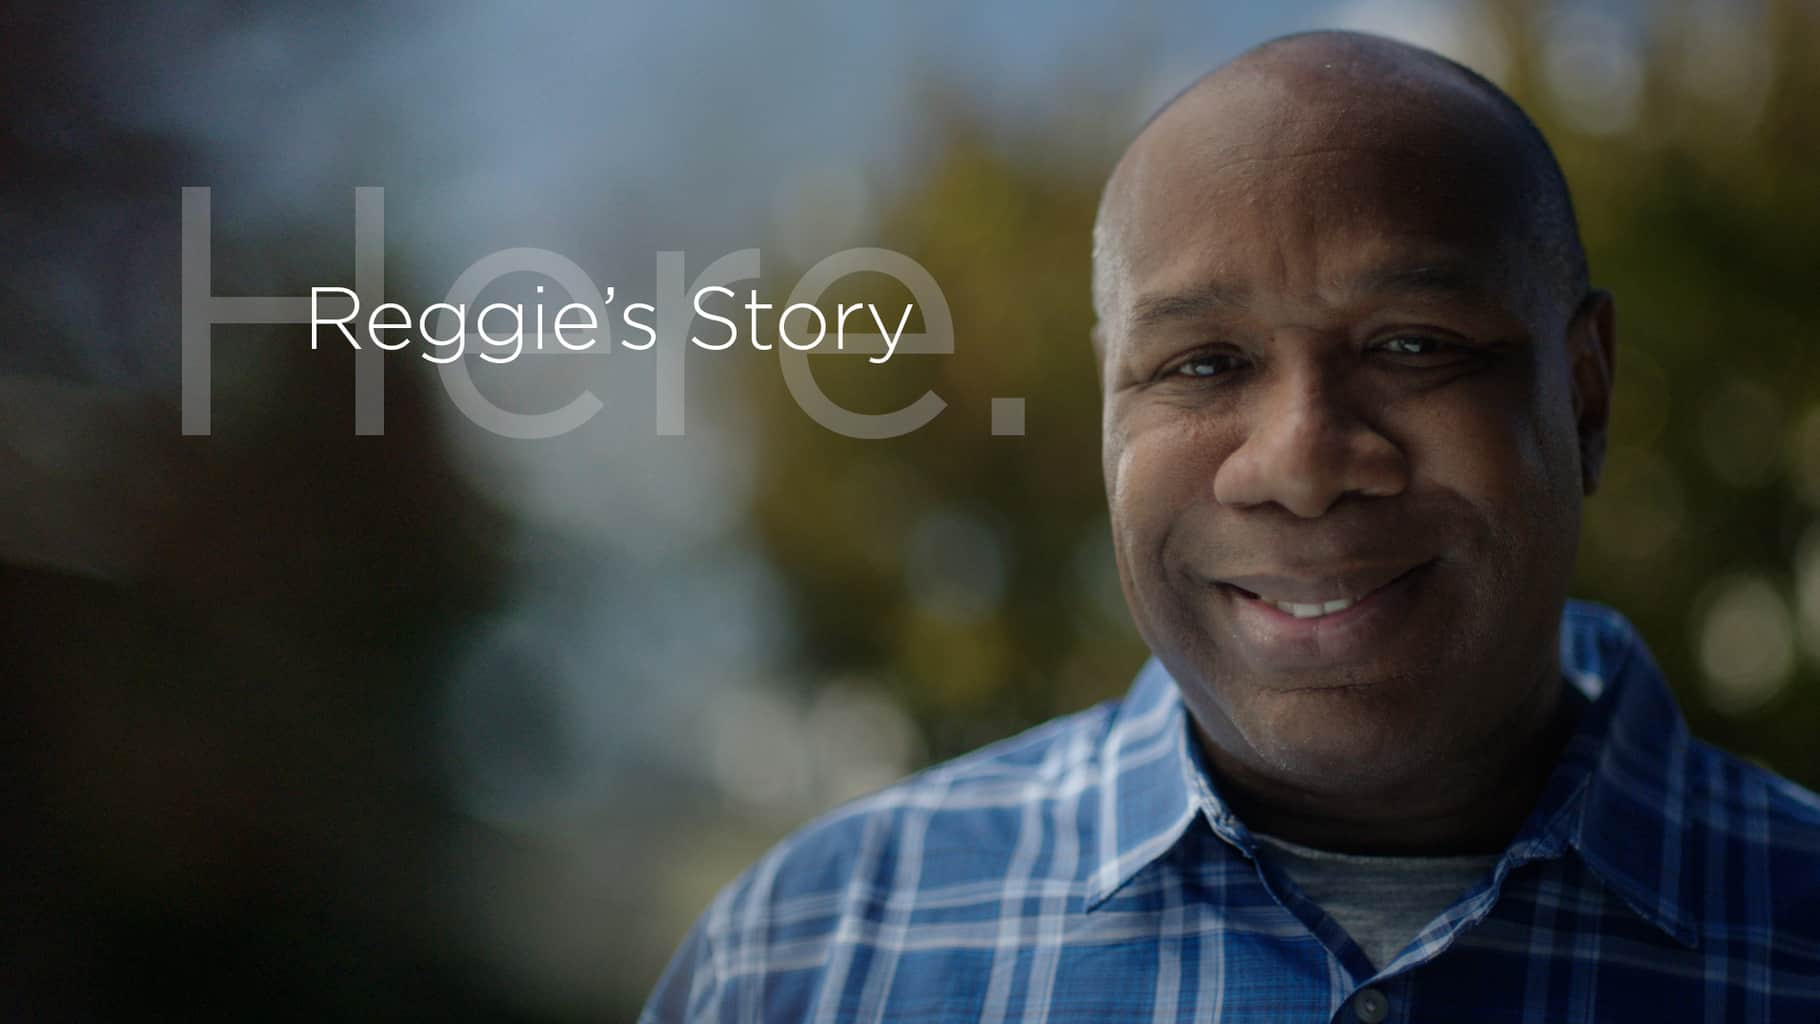 here-video-reggie-photo